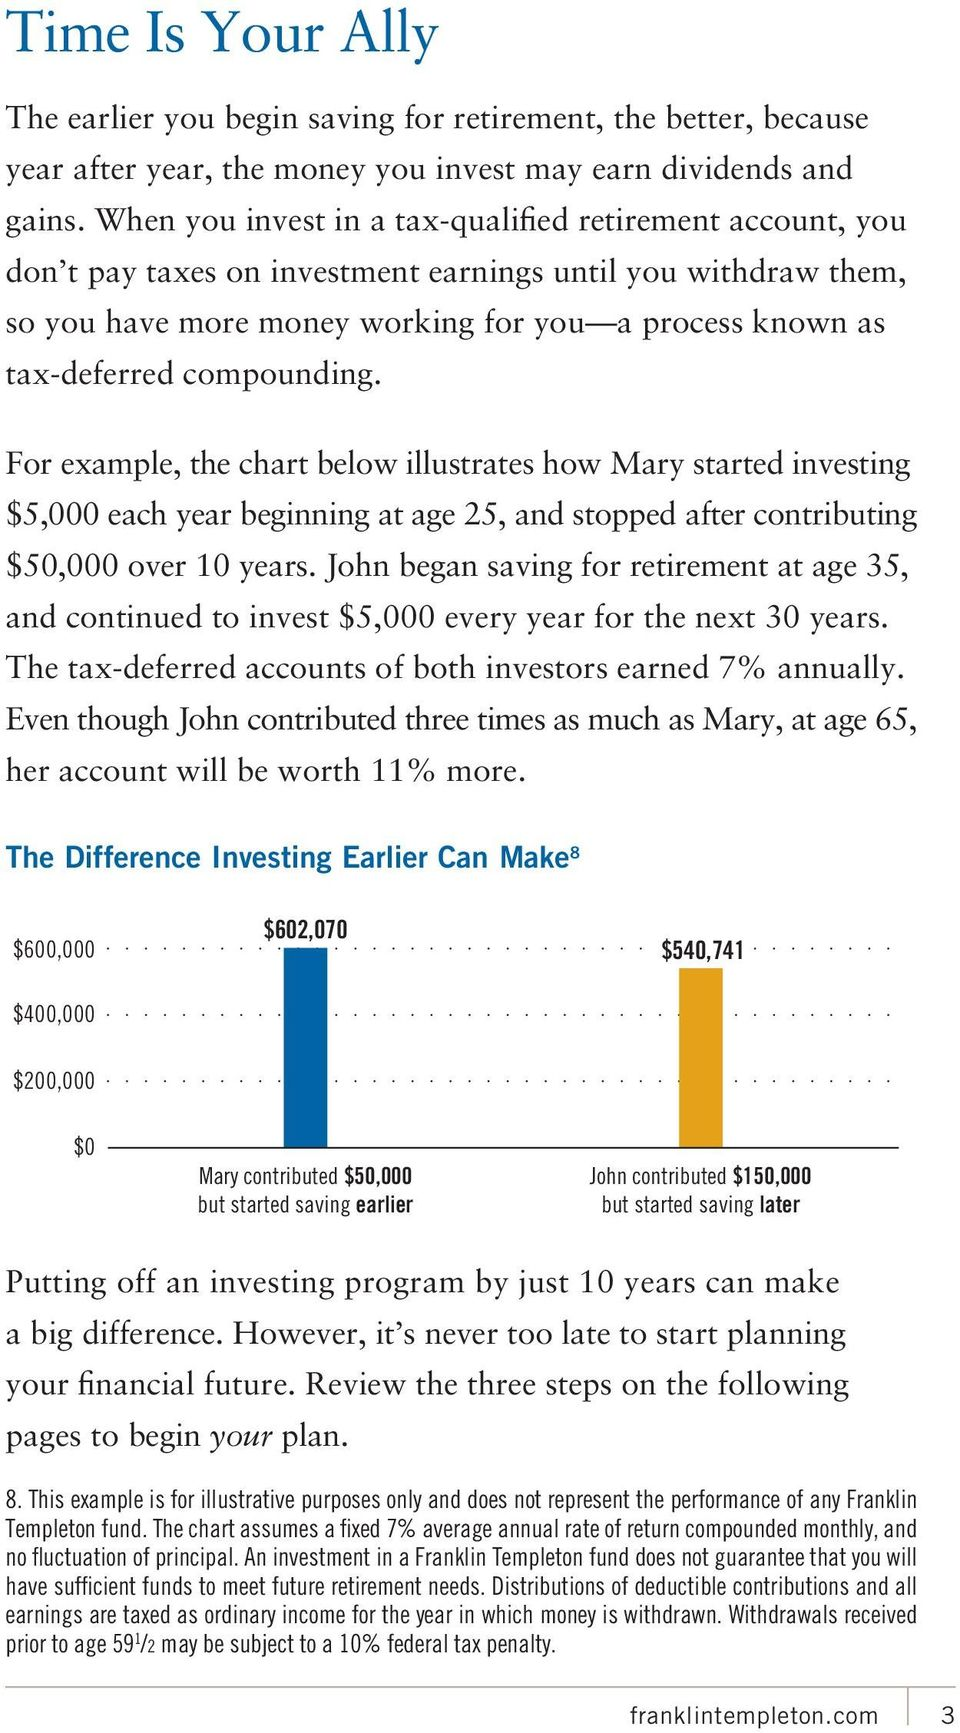 compounding. For example, the chart below illustrates how Mary started investing $5,000 each year beginning at age 25, and stopped after contributing $50,000 over 10 years.